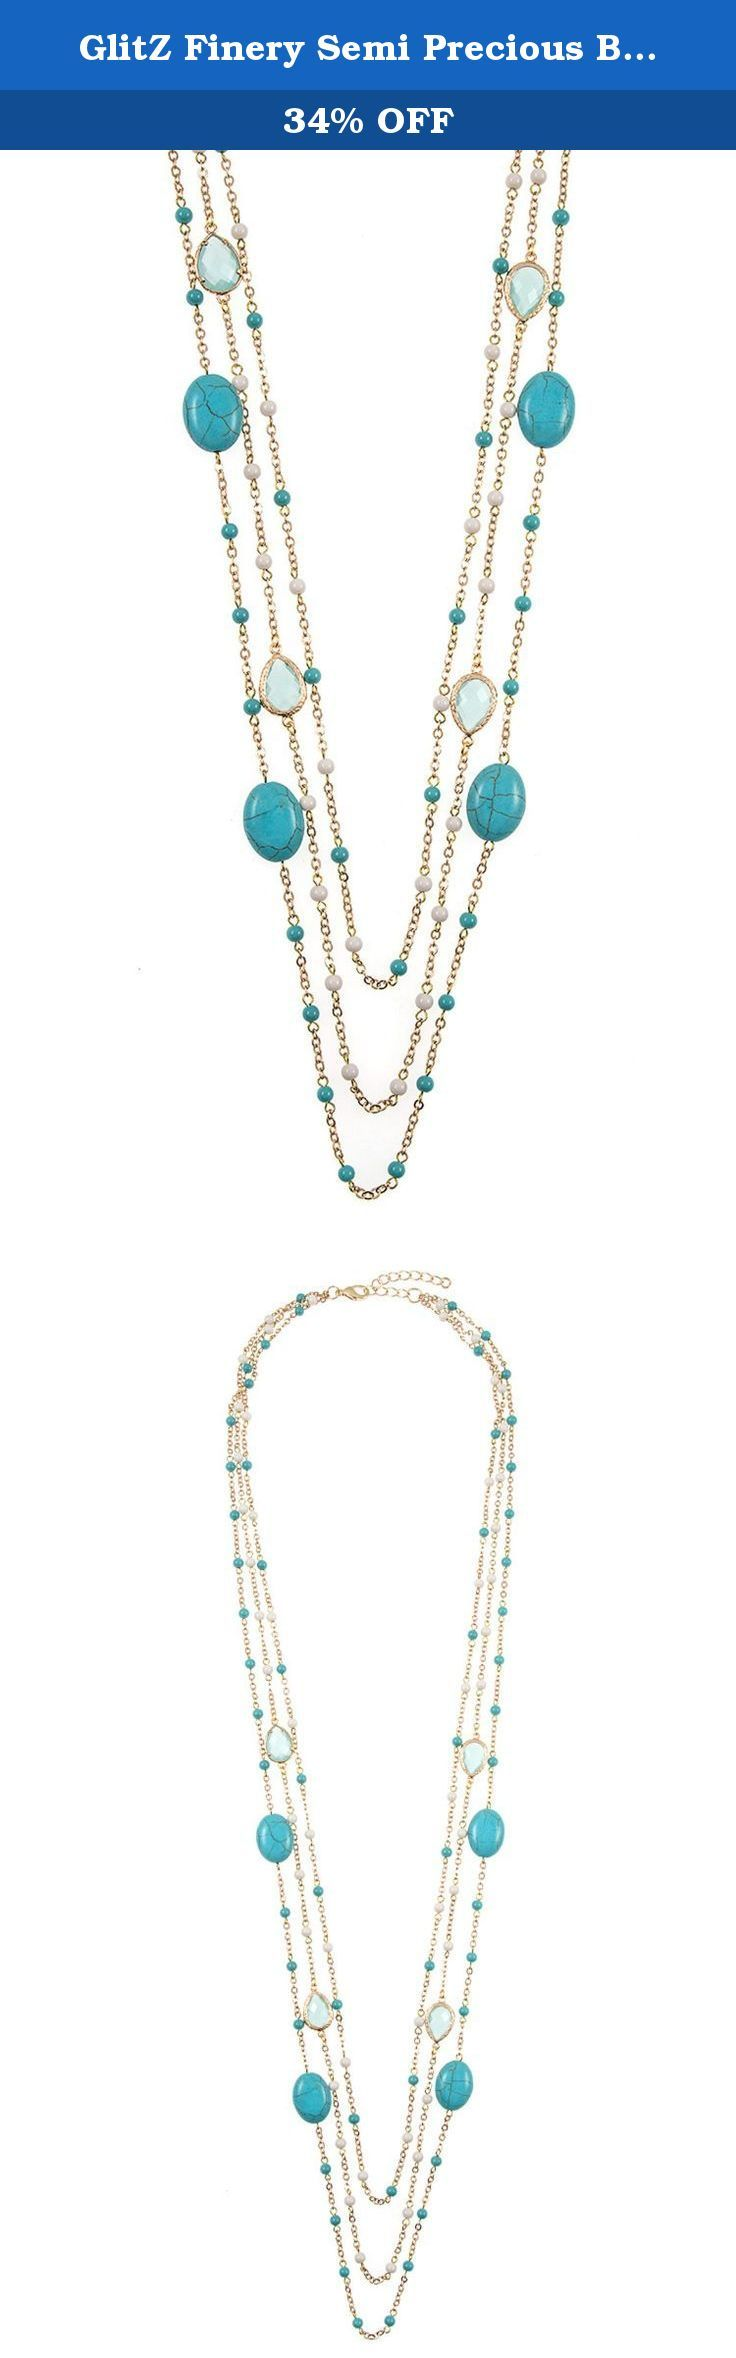 GlitZ Finery Semi Precious Beaded Stone Layered Necklace. Fashion Destination Presents GlitZ Finery Semi Precious Beaded Stone Layered Necklace. Buy brand-name Fashion Jewelry for everyday discount prices with Fashion Destination! Everyday LOW shipping *. Read product reviews on Fashion Necklaces, Fashion Bracelets, Fashion Earrings & more. Shop the Fashion Destination store for a wide selection of rings, bracelets, necklaces, earrings and diamond jewelry. Whether you are searching for…